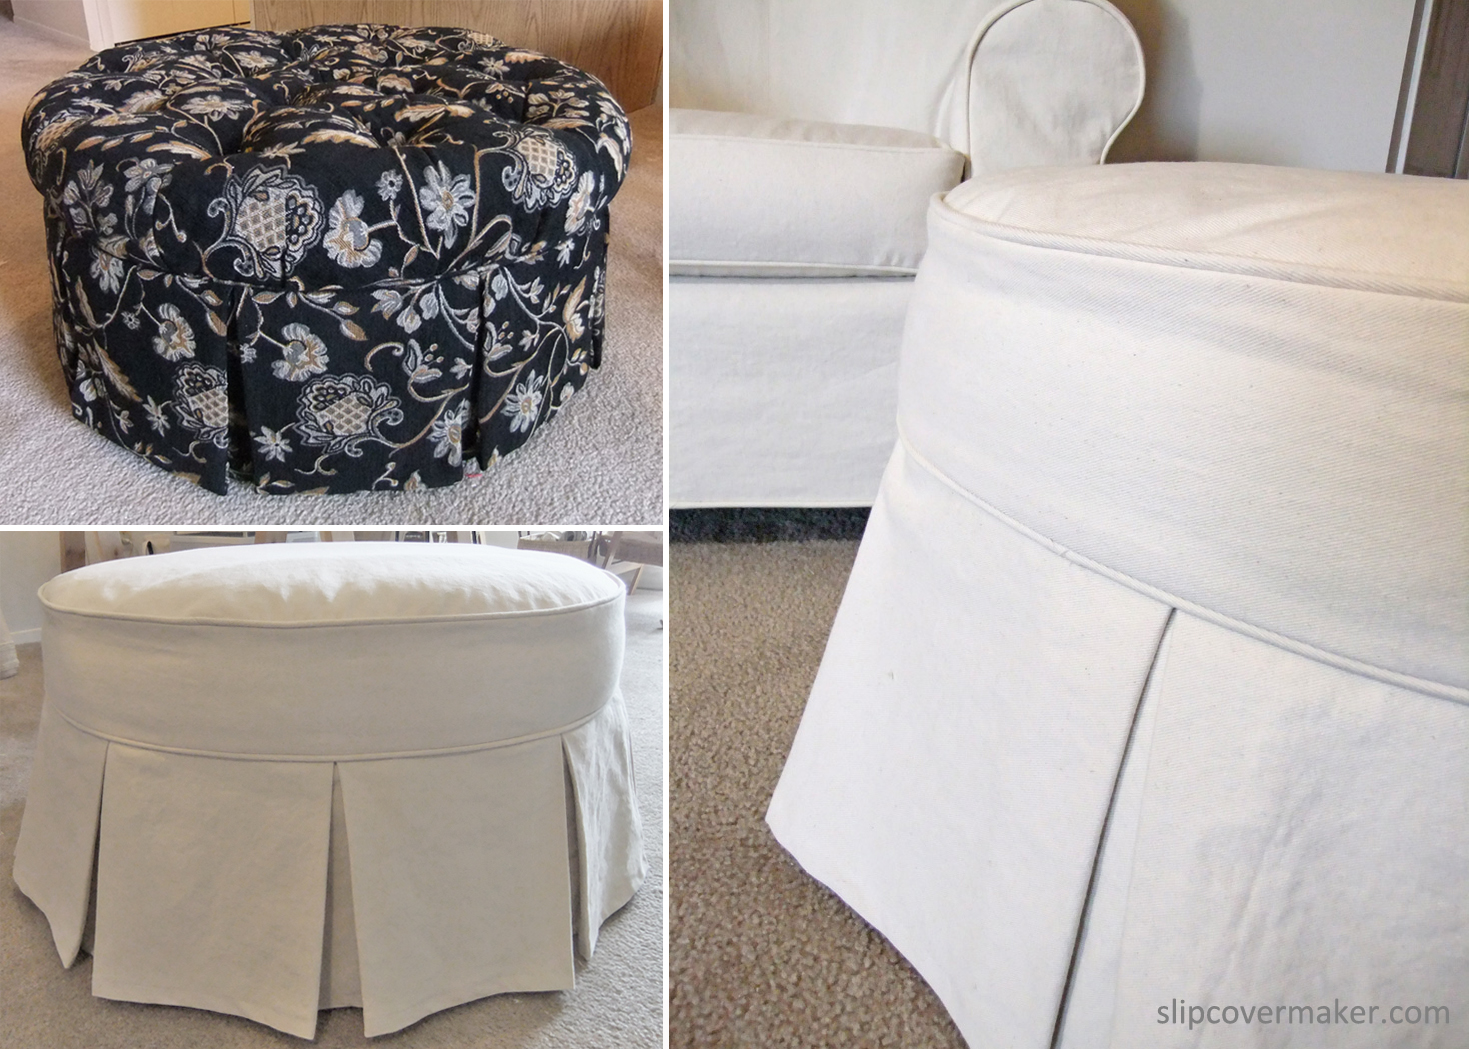 Slipcover For Oversized Chair And Ottoman Ottoman Slipcover From Tufted To Tailored The Slipcover